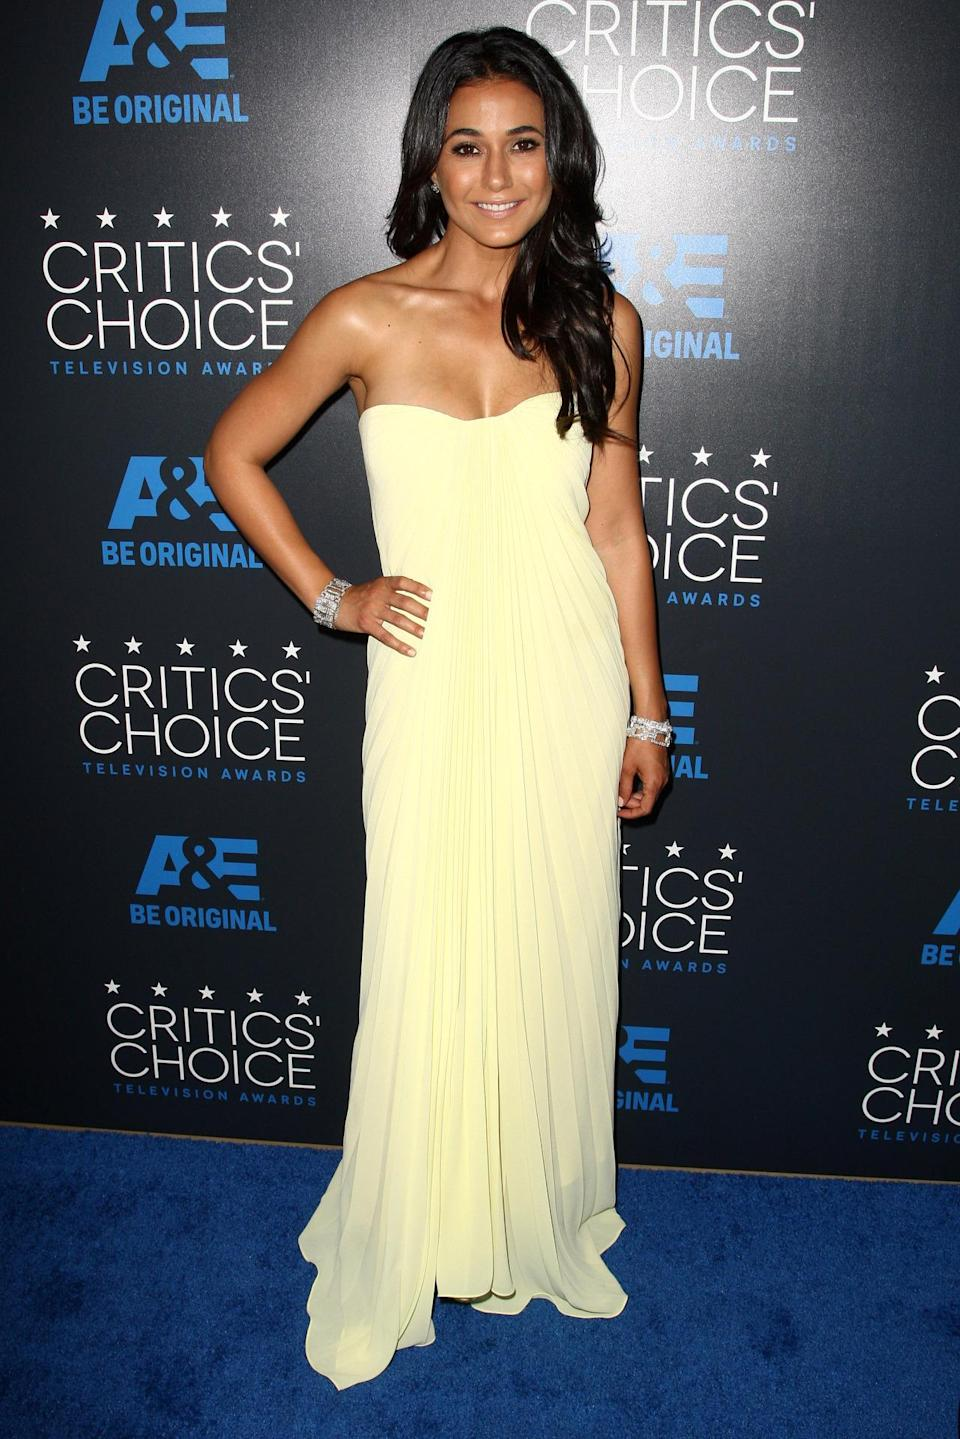 With a tan glow, Emmanuelle Chriqui was the quintessential California girl in a pale yellow floor-length gown.